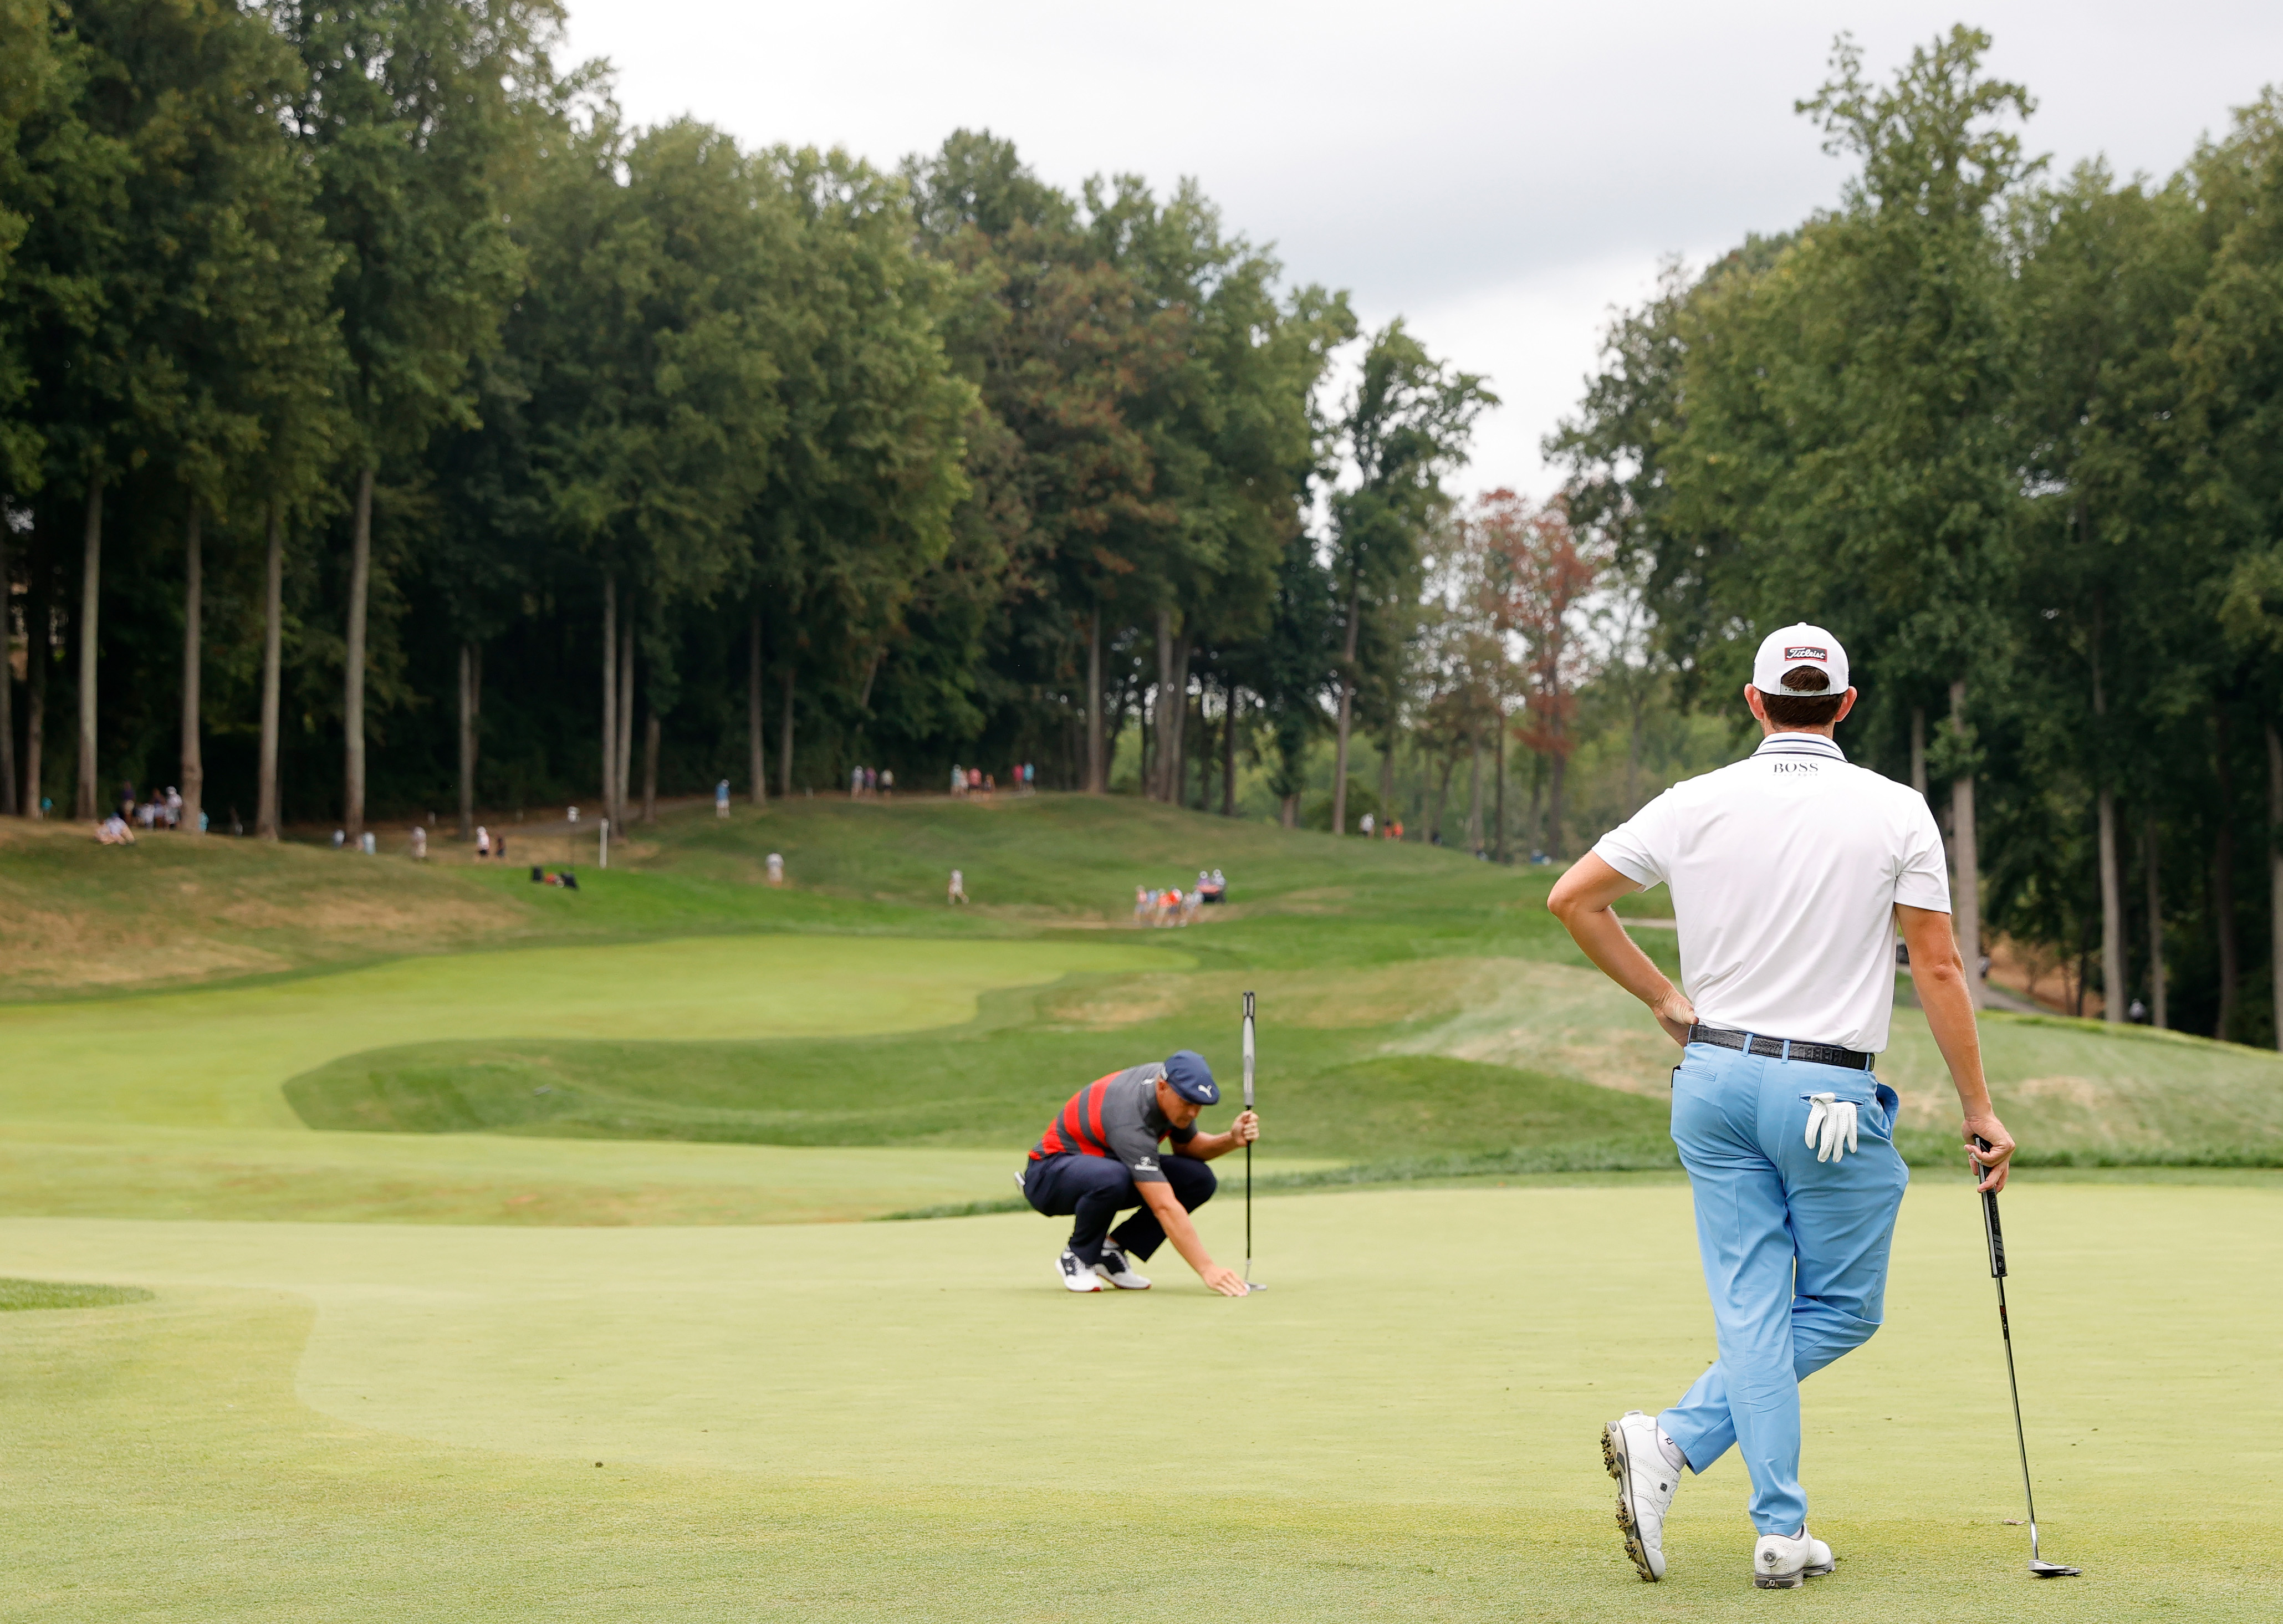 Bryson DeChambeau of the United States lines up a putt as Patrick Cantlay of the United States looks on during the final round of the BMW Championship at Caves Valley Golf Club on August 29, 2021 in Owings Mills, Maryland.